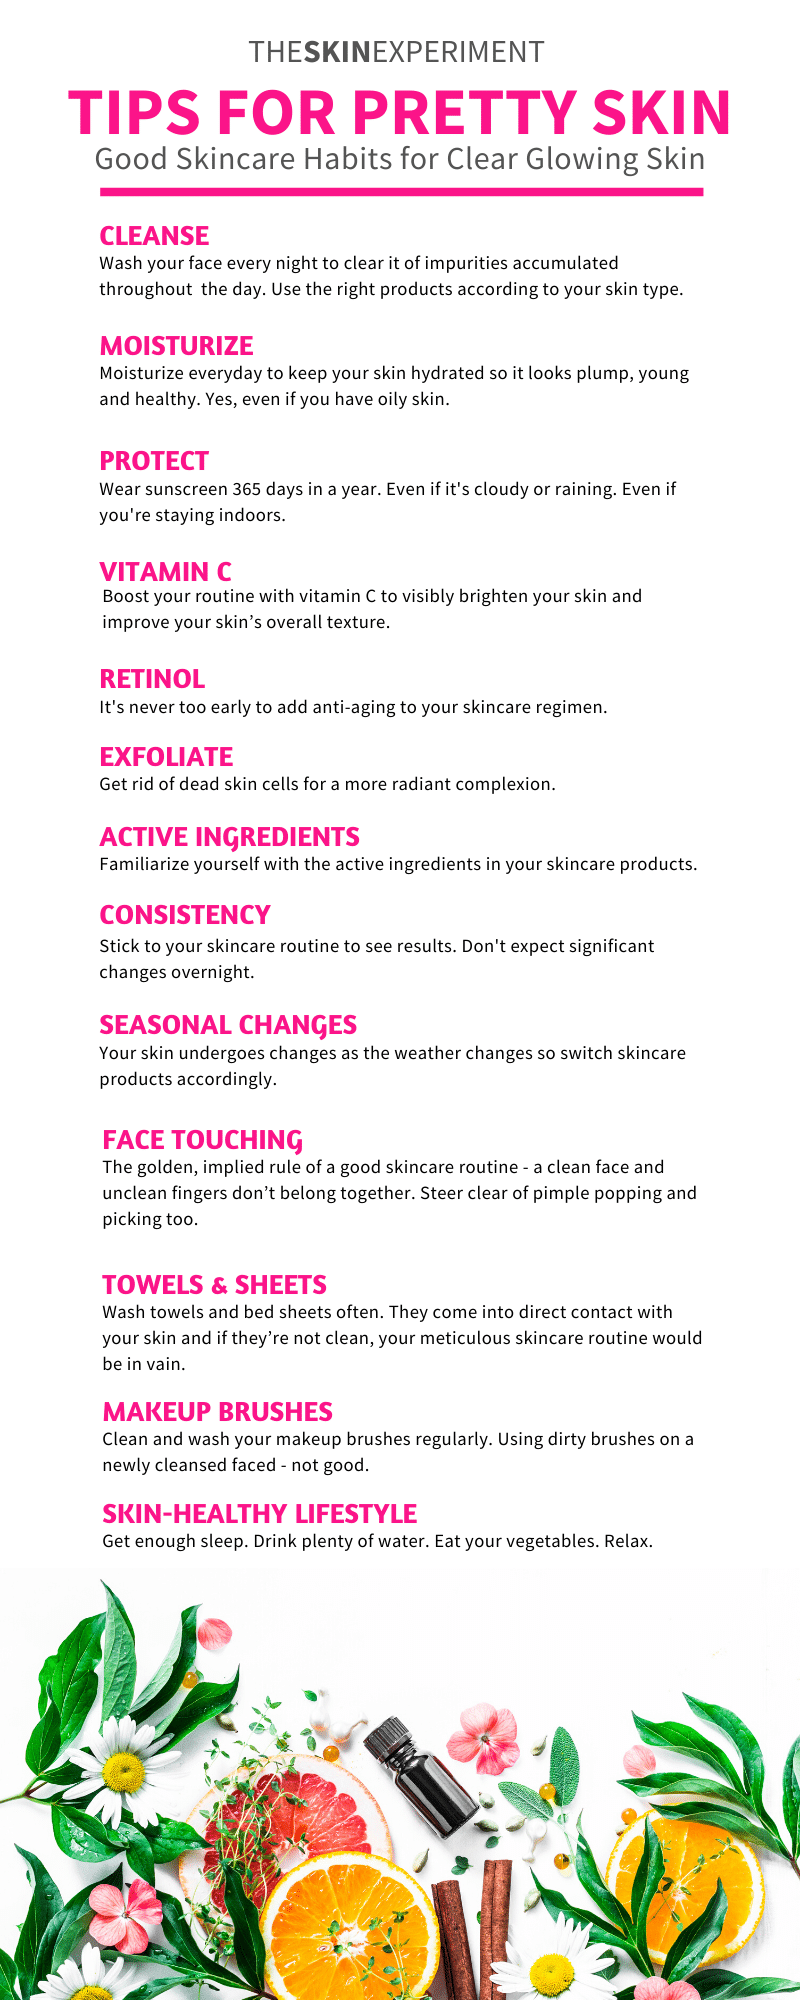 Good Skincare Habits Infographic